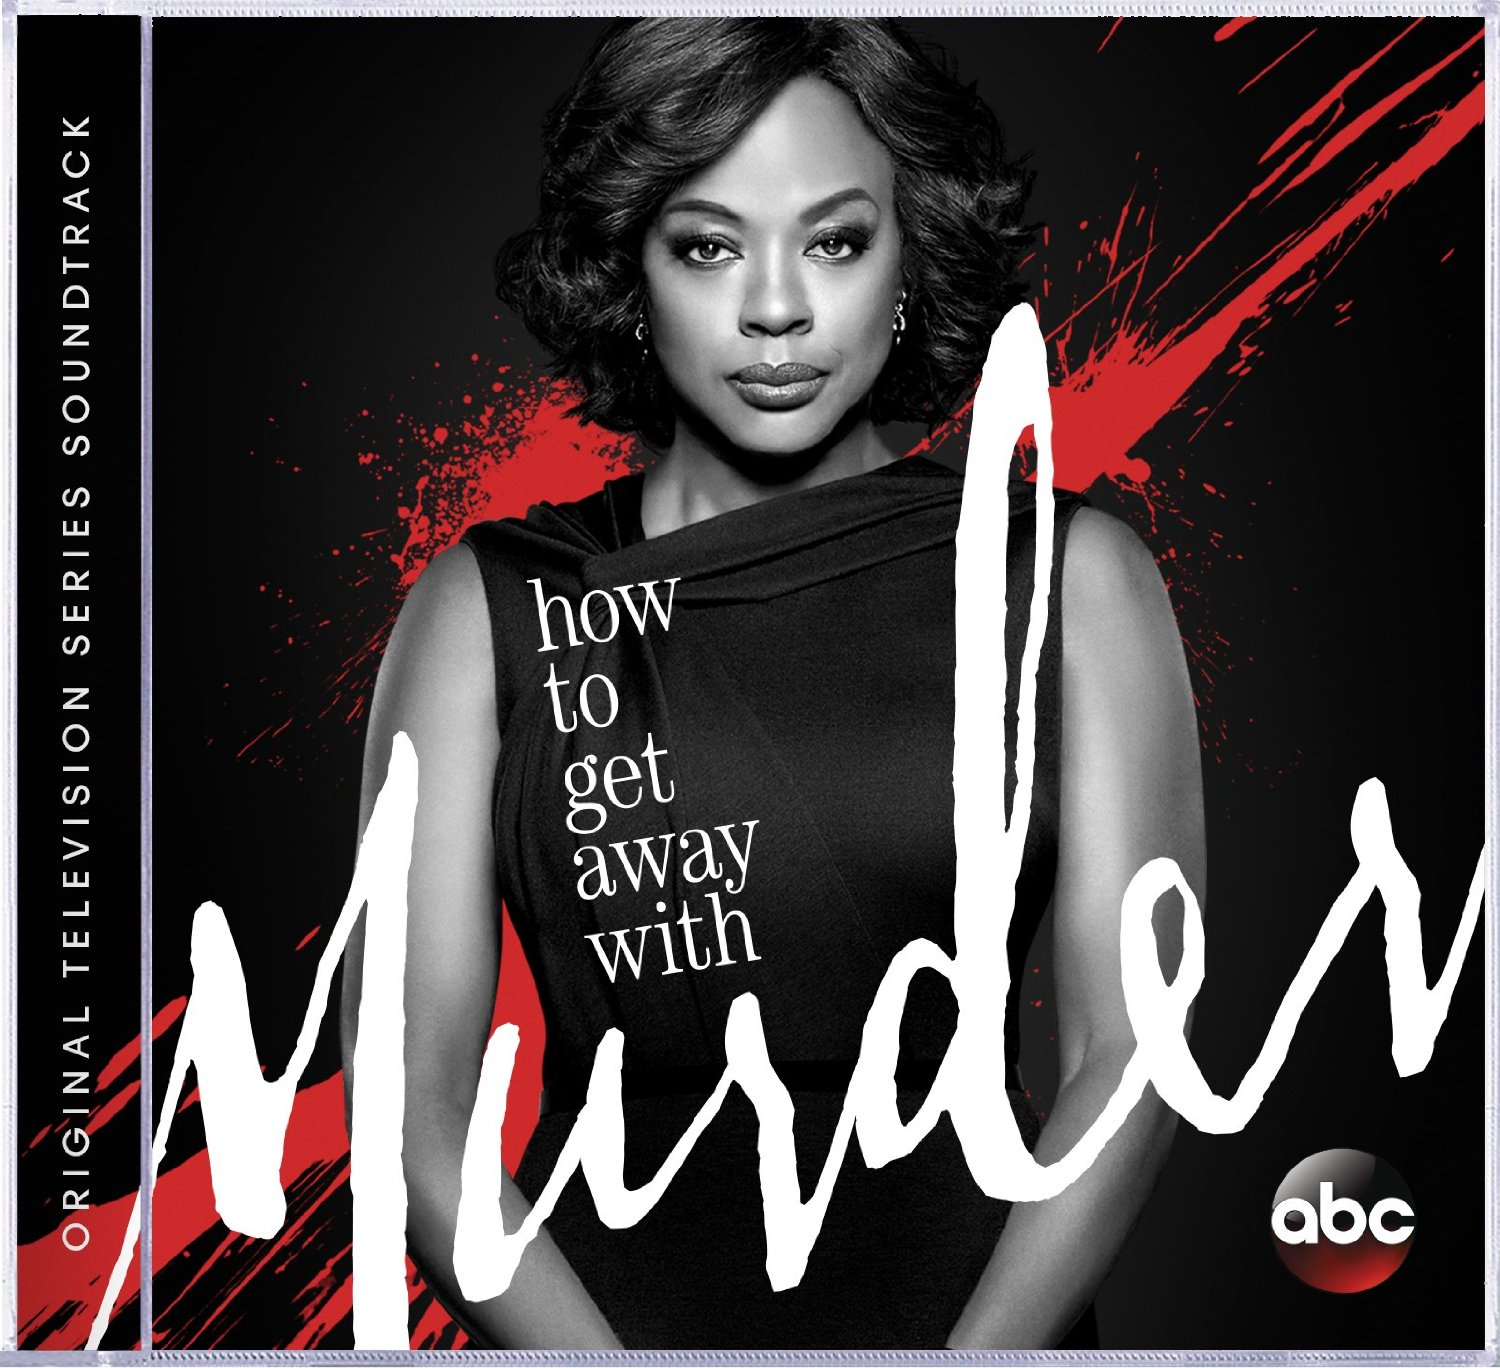 how to get away with a murderer rtl crime